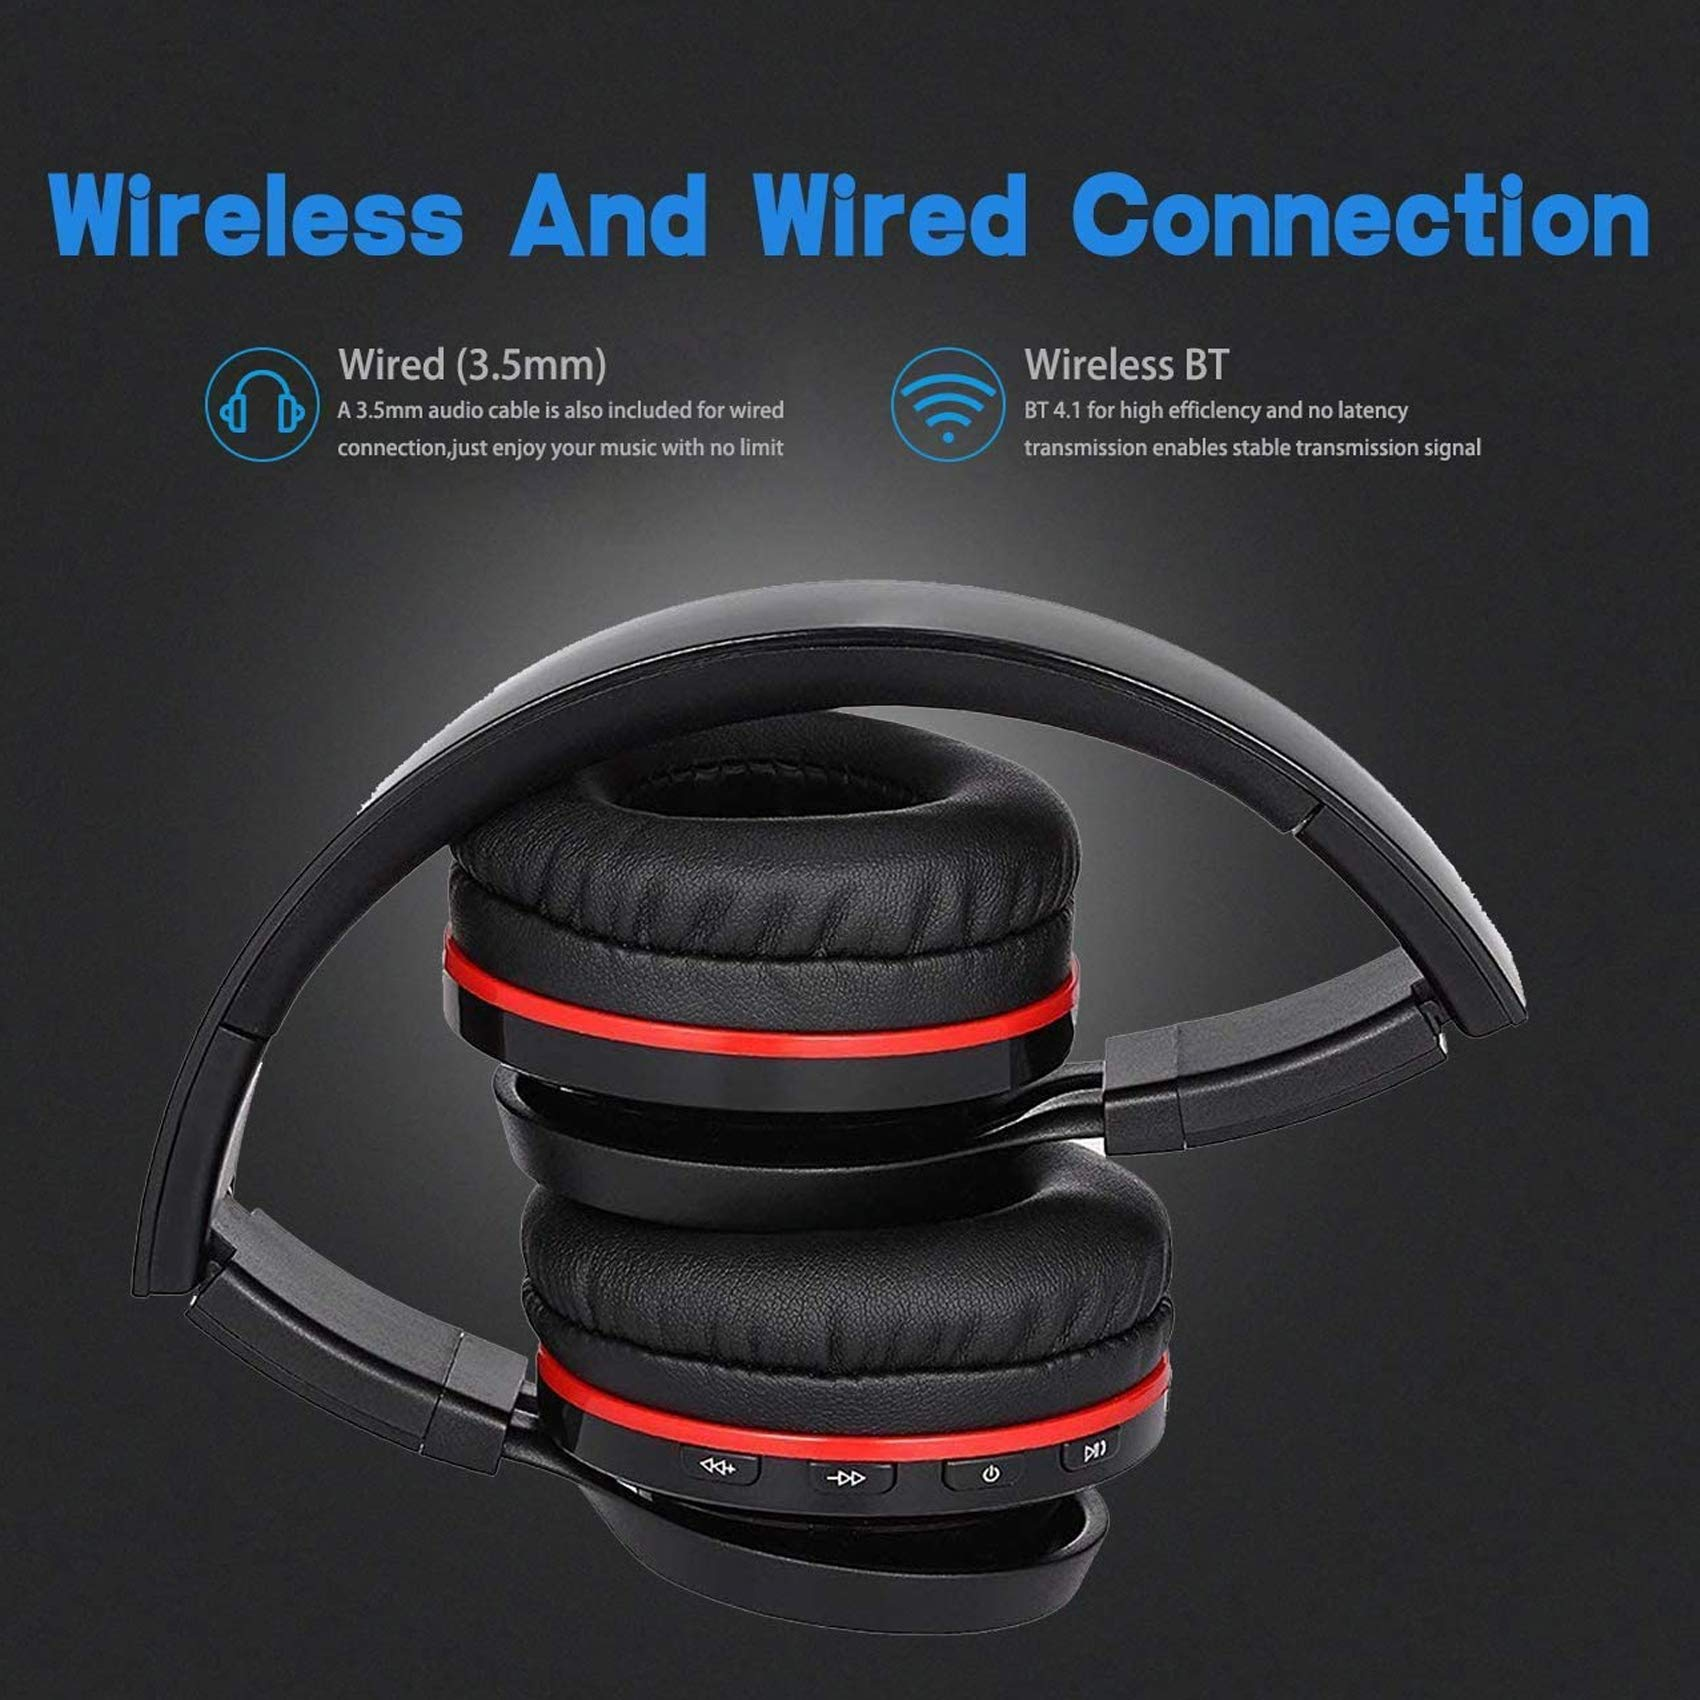 Active Noise Cancelling Wired/Wireless Bluetooth Headphones, Monodeal Foldable Over The Ear Headset,Soft Memory-Protein Earmuffs,Hi-Fi Stereo Headset for PC/Cell Phones/TV Travel Work Daily Use